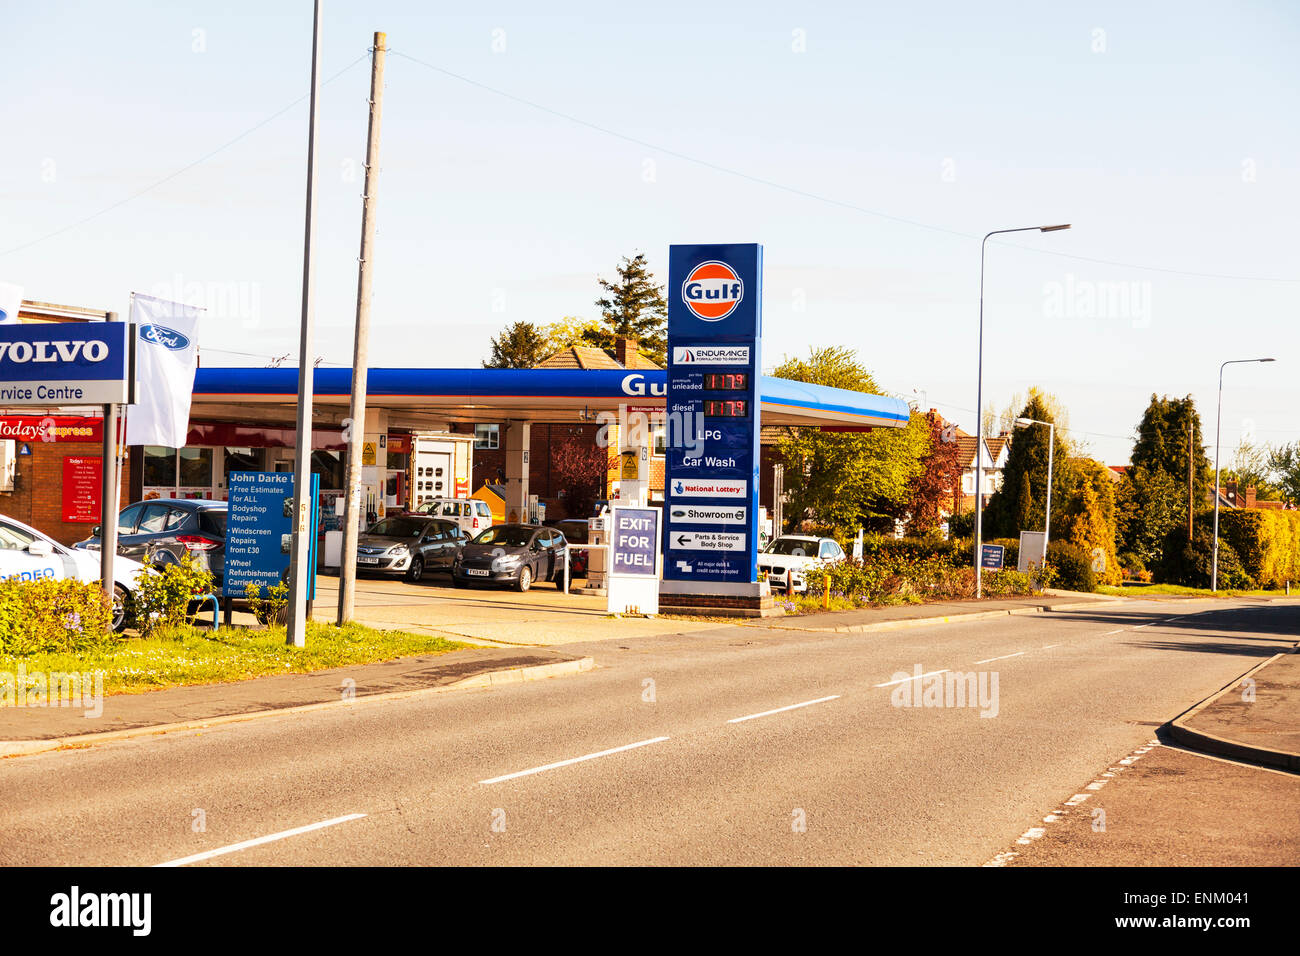 Gulf petrol station unleaded and diesel same price per litre forecourt roadside garage shop - Stock Image